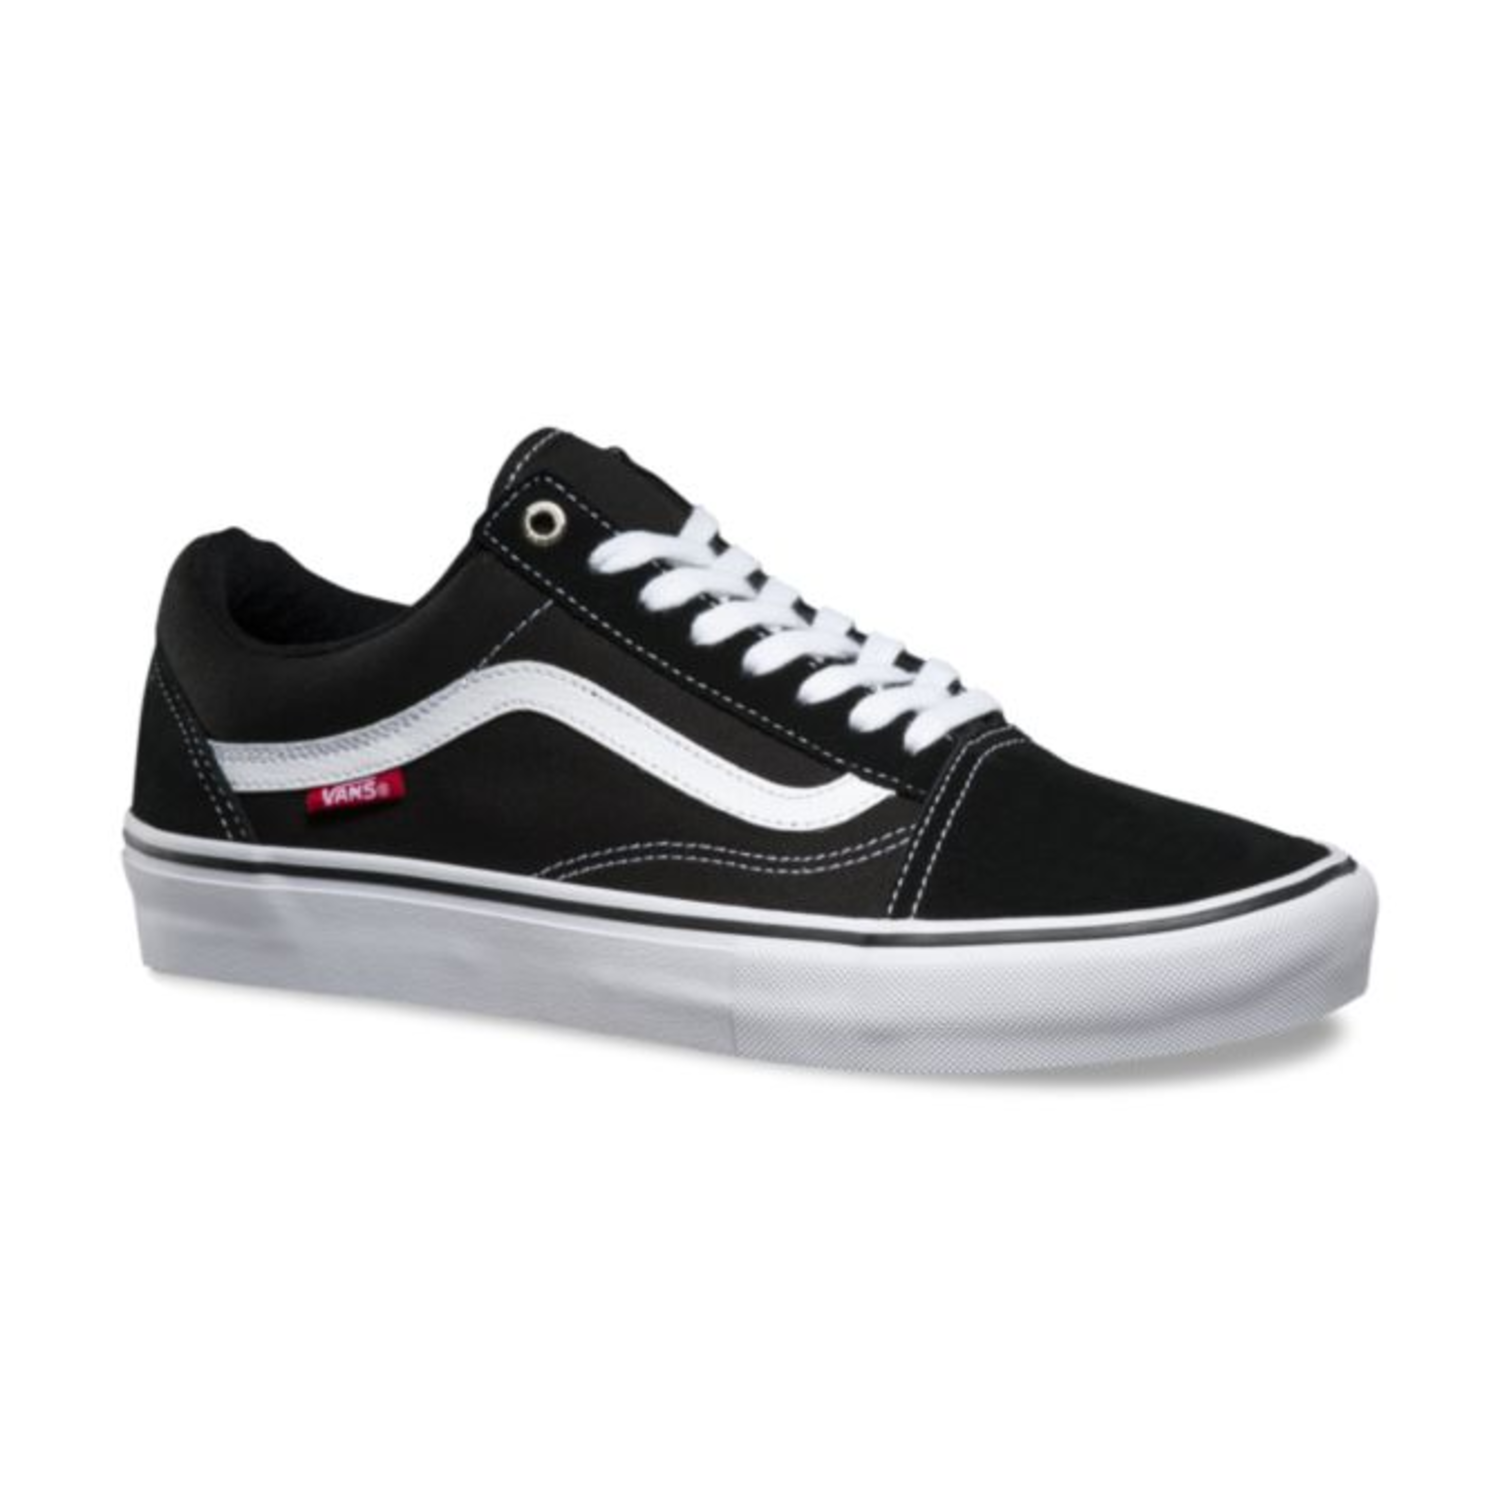 Vans Old Skool Boys Casual Shoes : STOMP KIDS SHOES | Buy